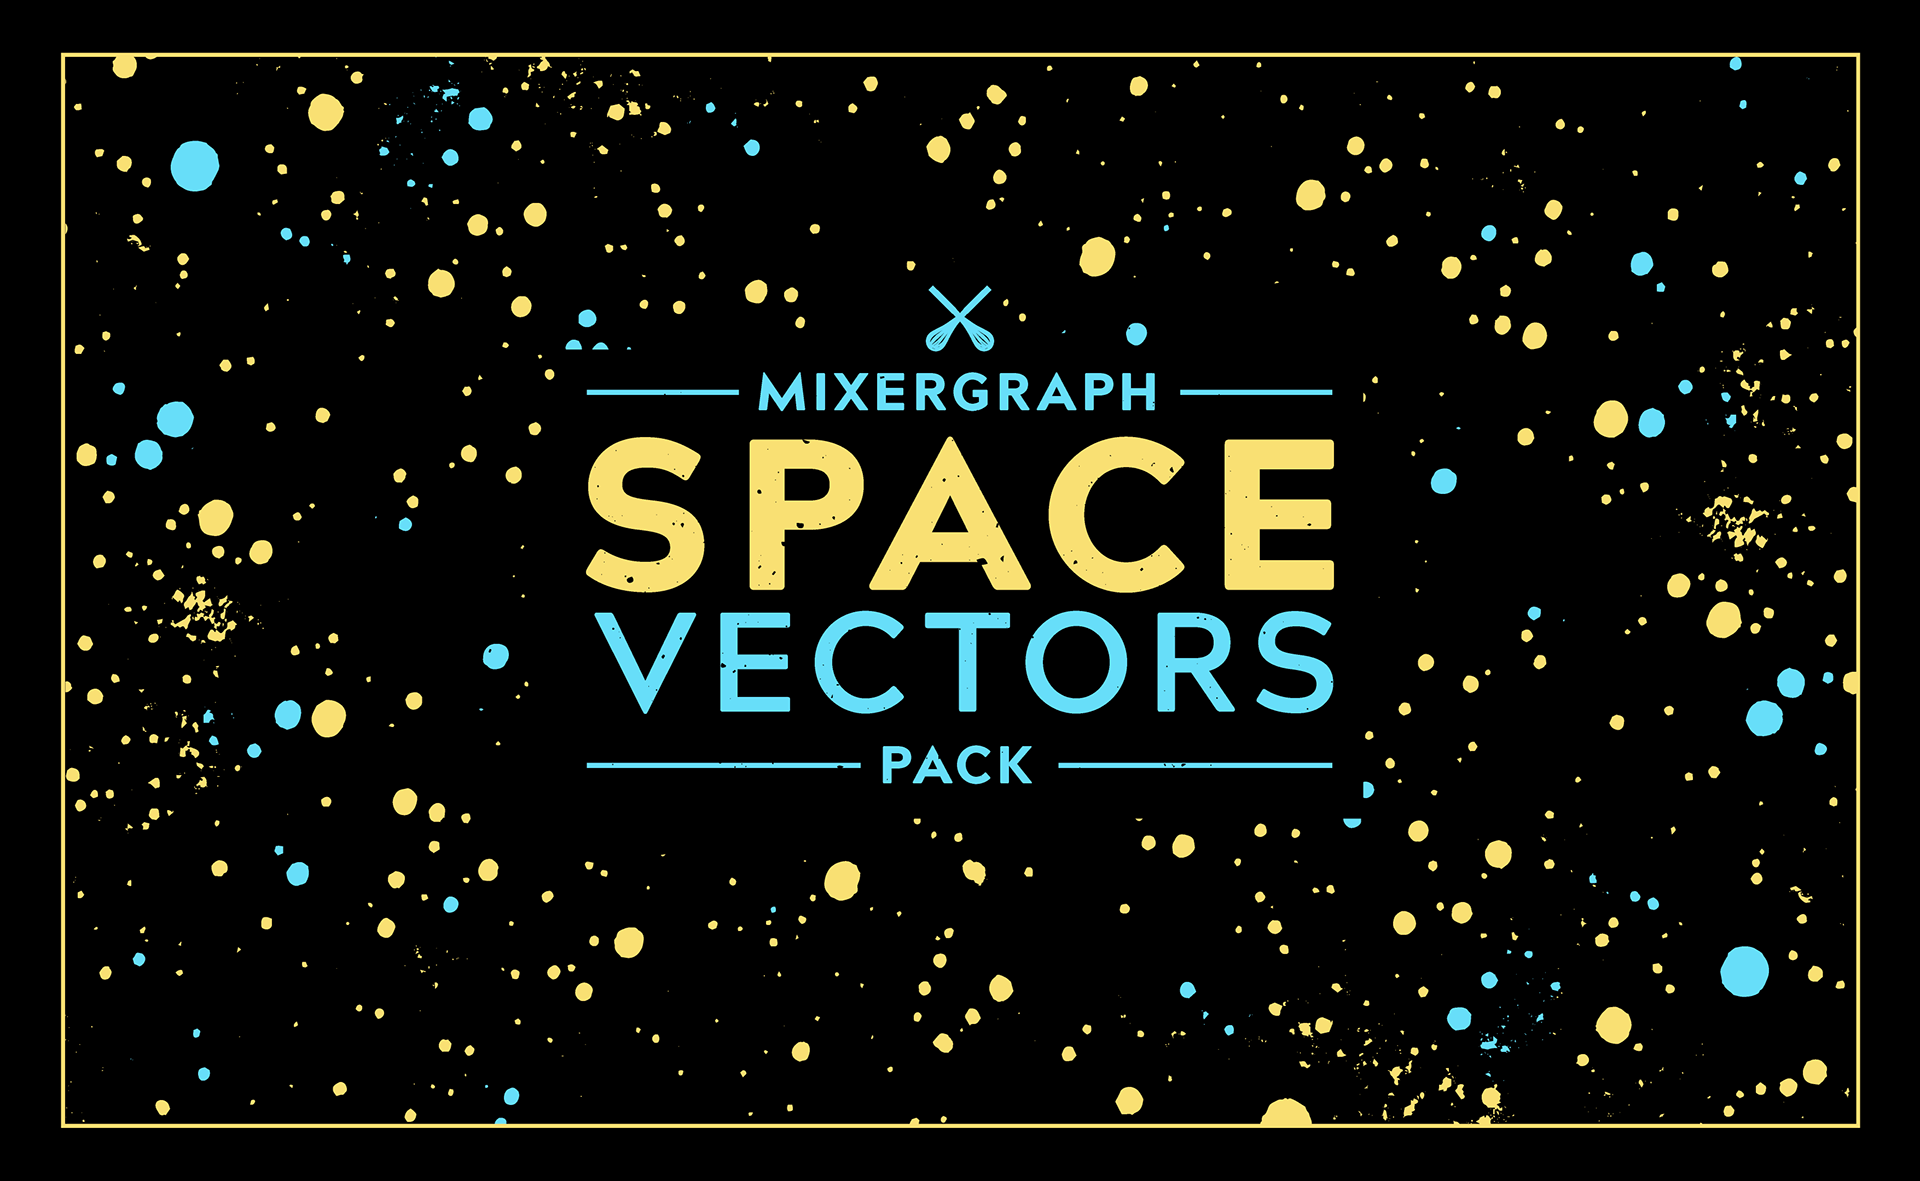 Mixergraph Space Vectors